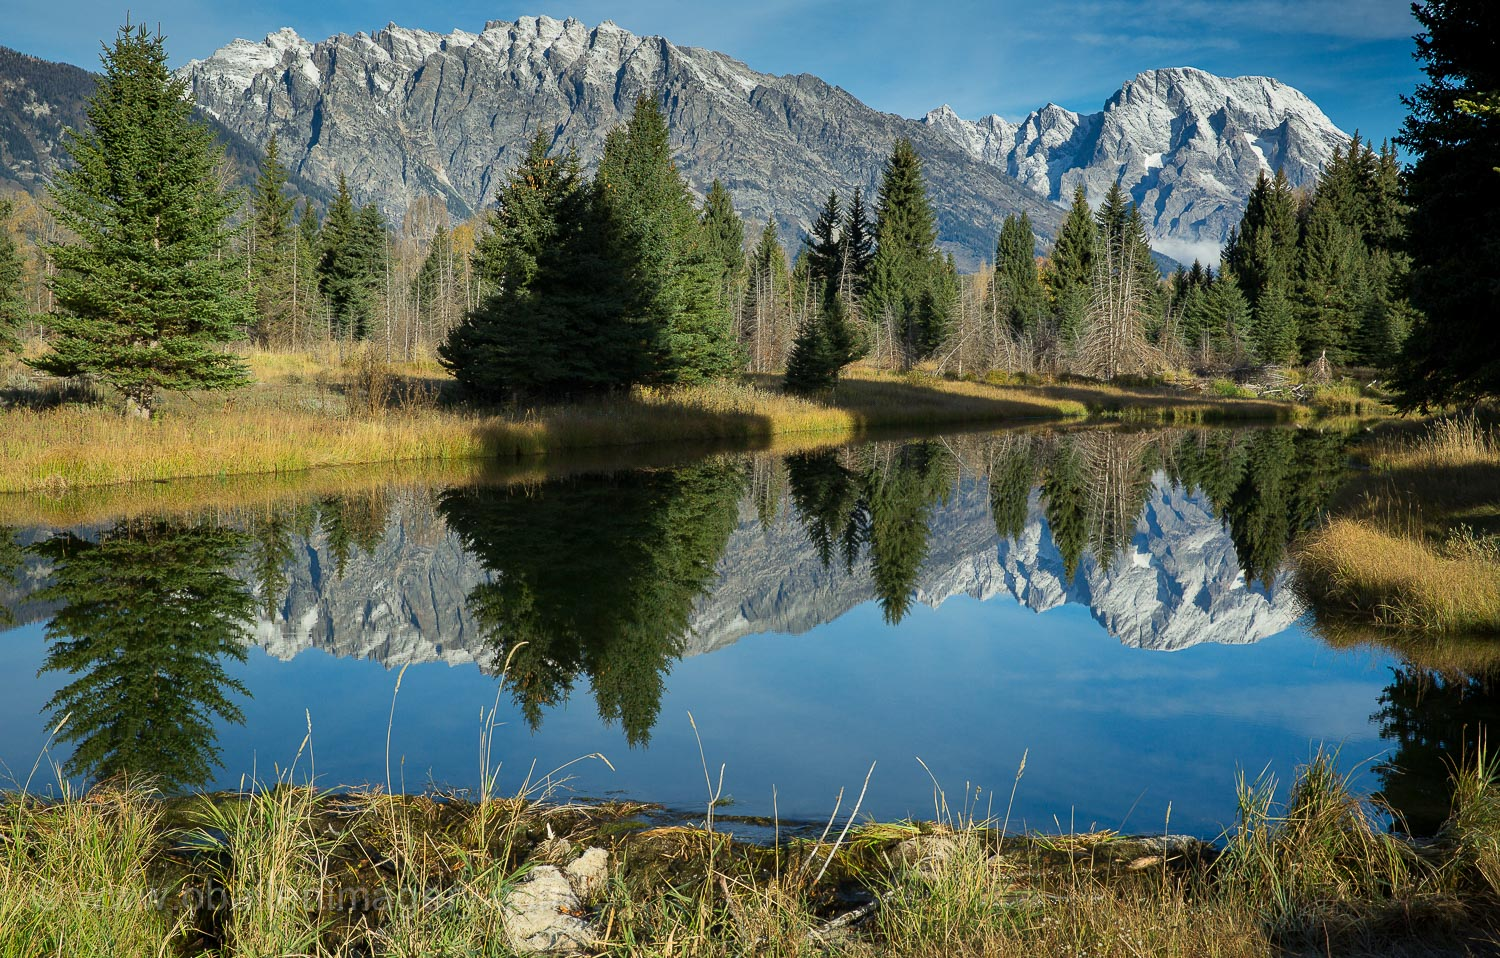 This images was taken near Schwabacher's Landing on a beautiful fall day.